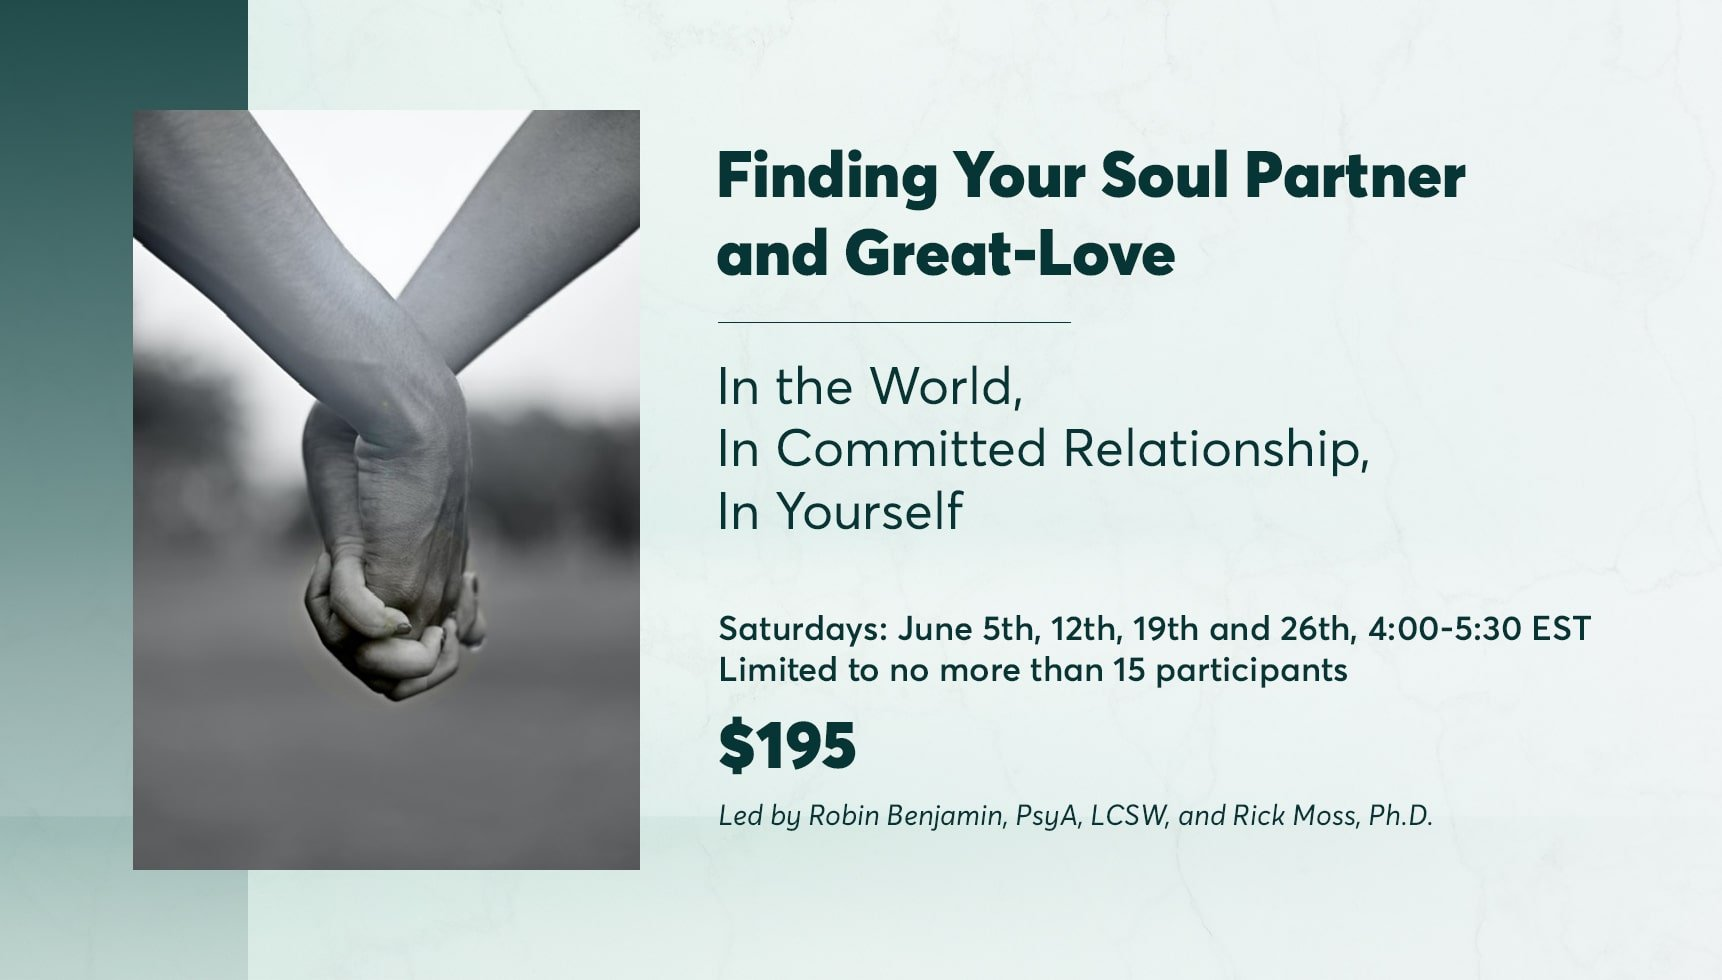 Finding Your Soul Partner and Great-Love: In the World, In Committed Relationship, In Yourself